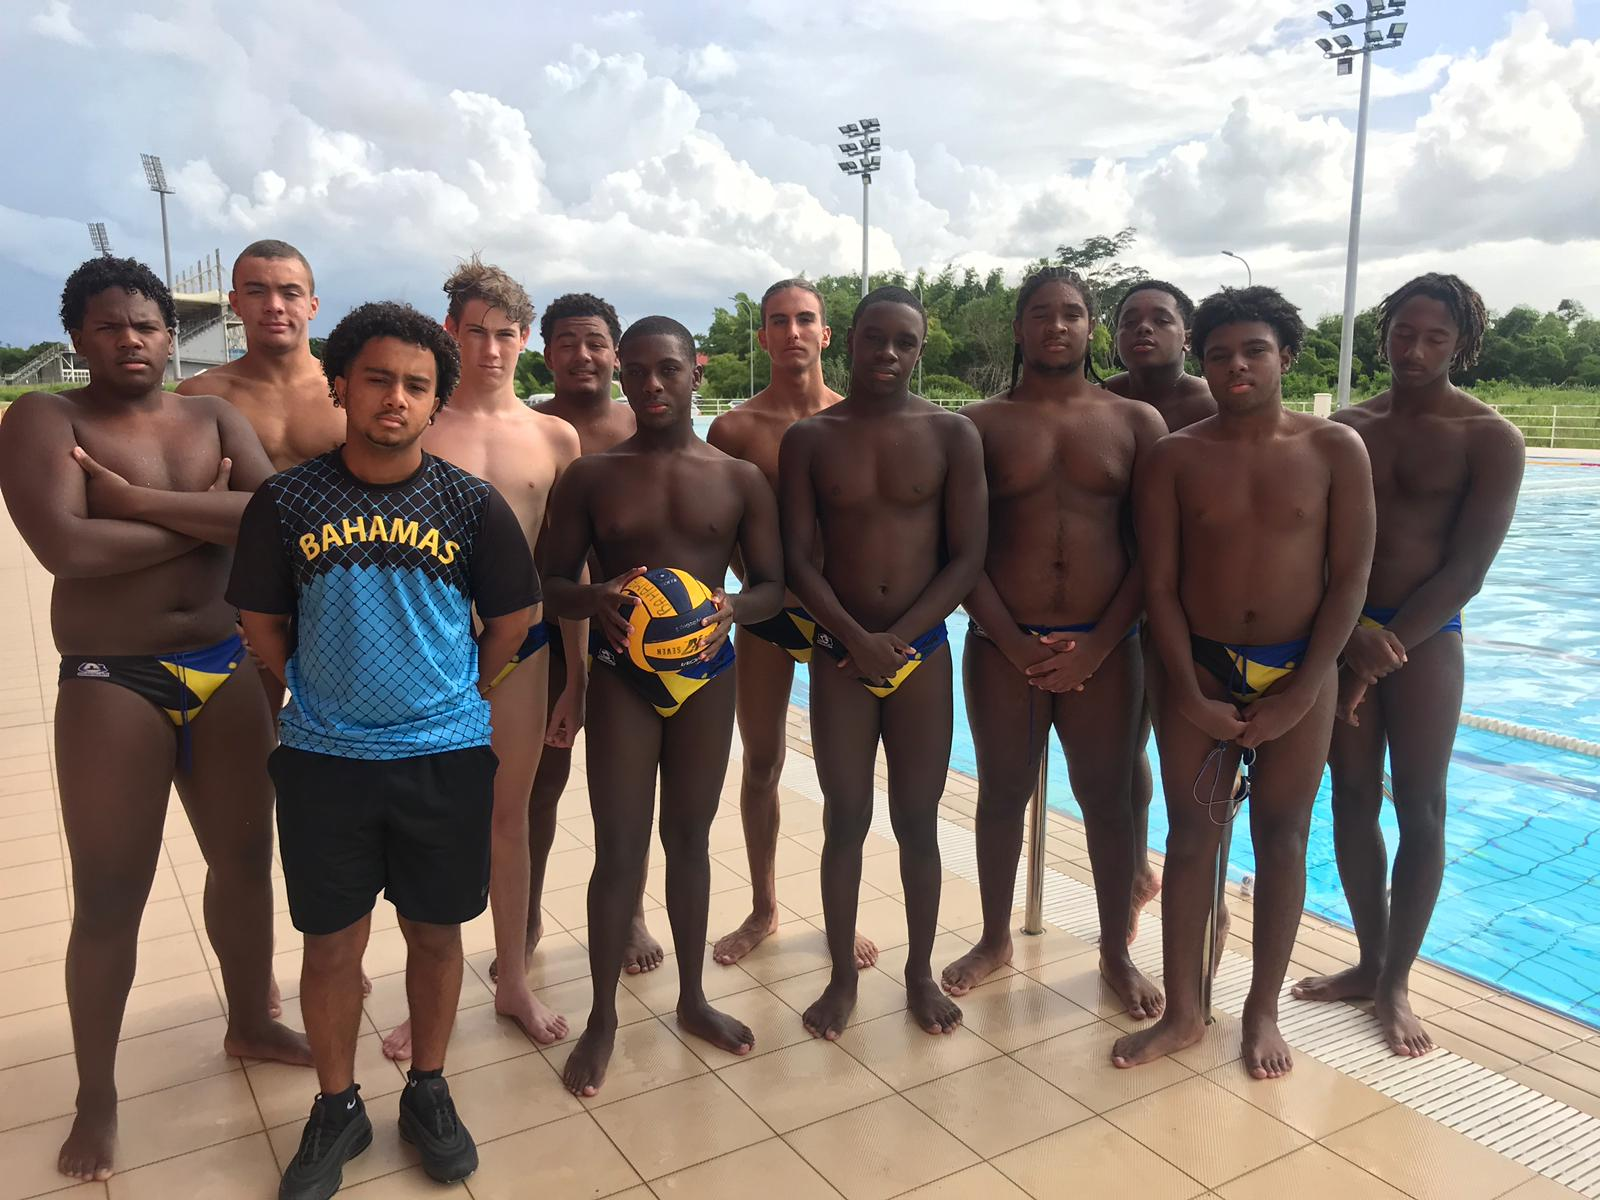 Bahamas draws 9-9 with Trinidad and Tobago